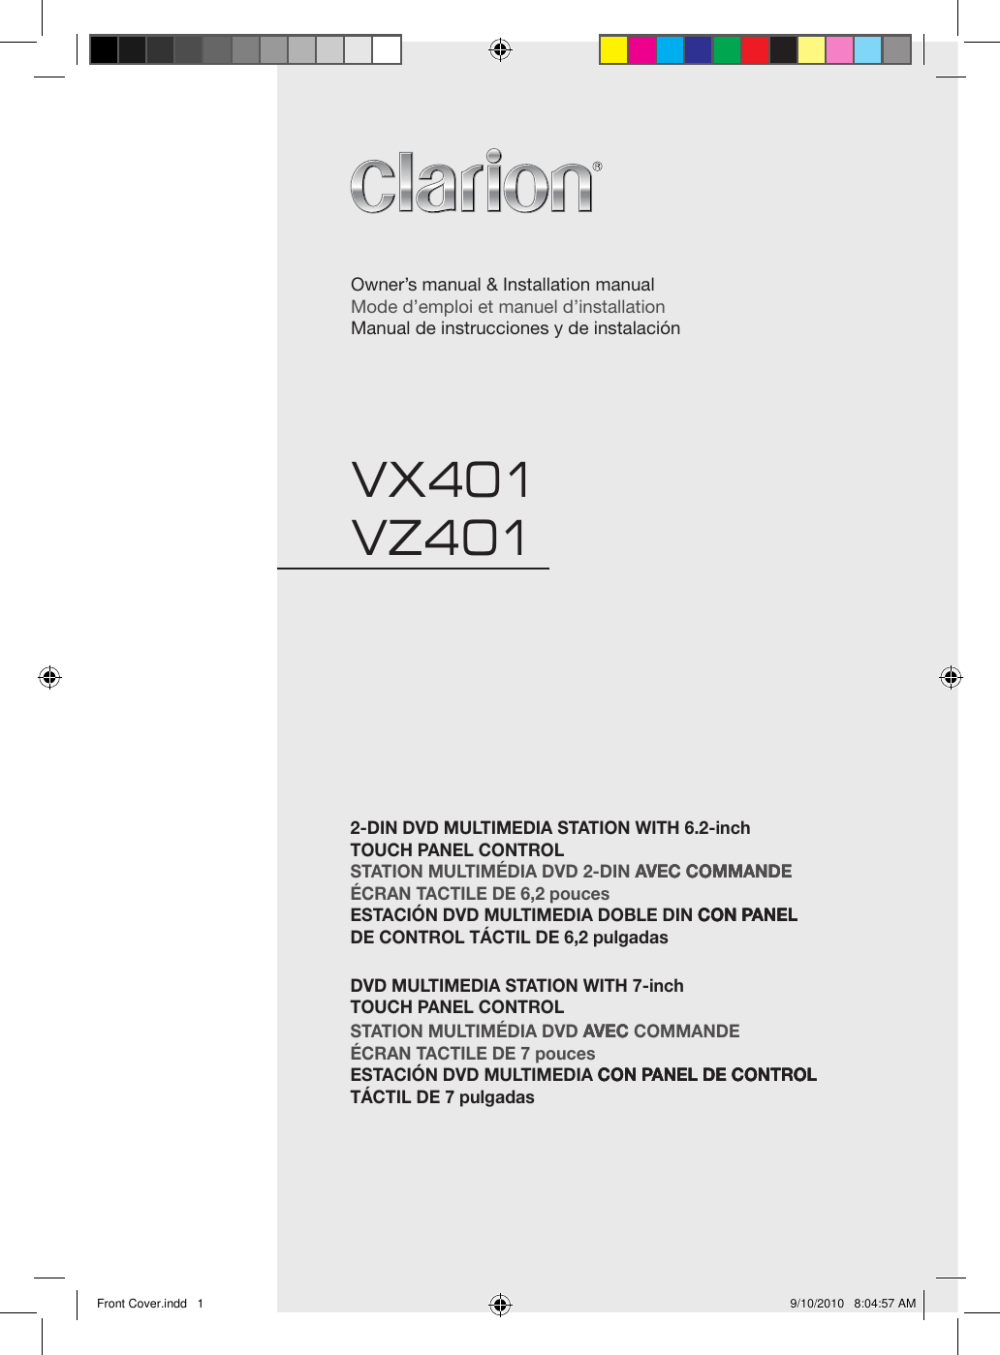 medium resolution of clarion vx401 owners manual wiring diagram vz401 manual